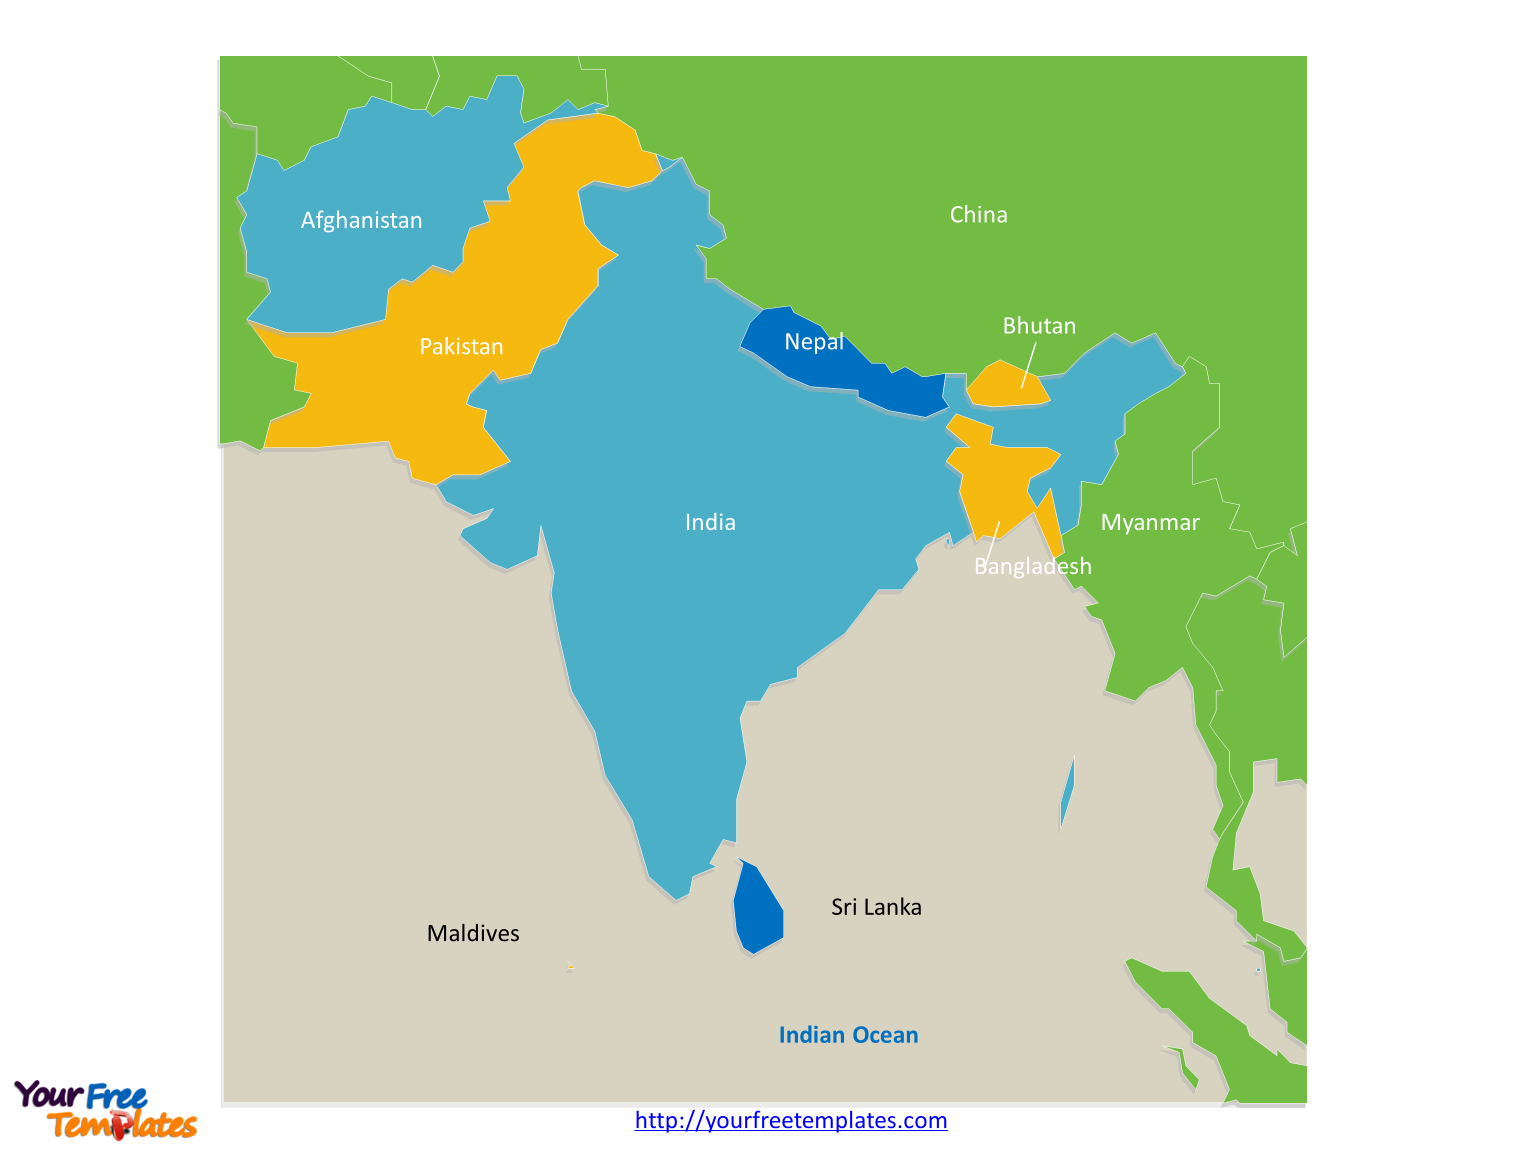 south asia map cities South Asia Map Free Templates Free Powerpoint Templates